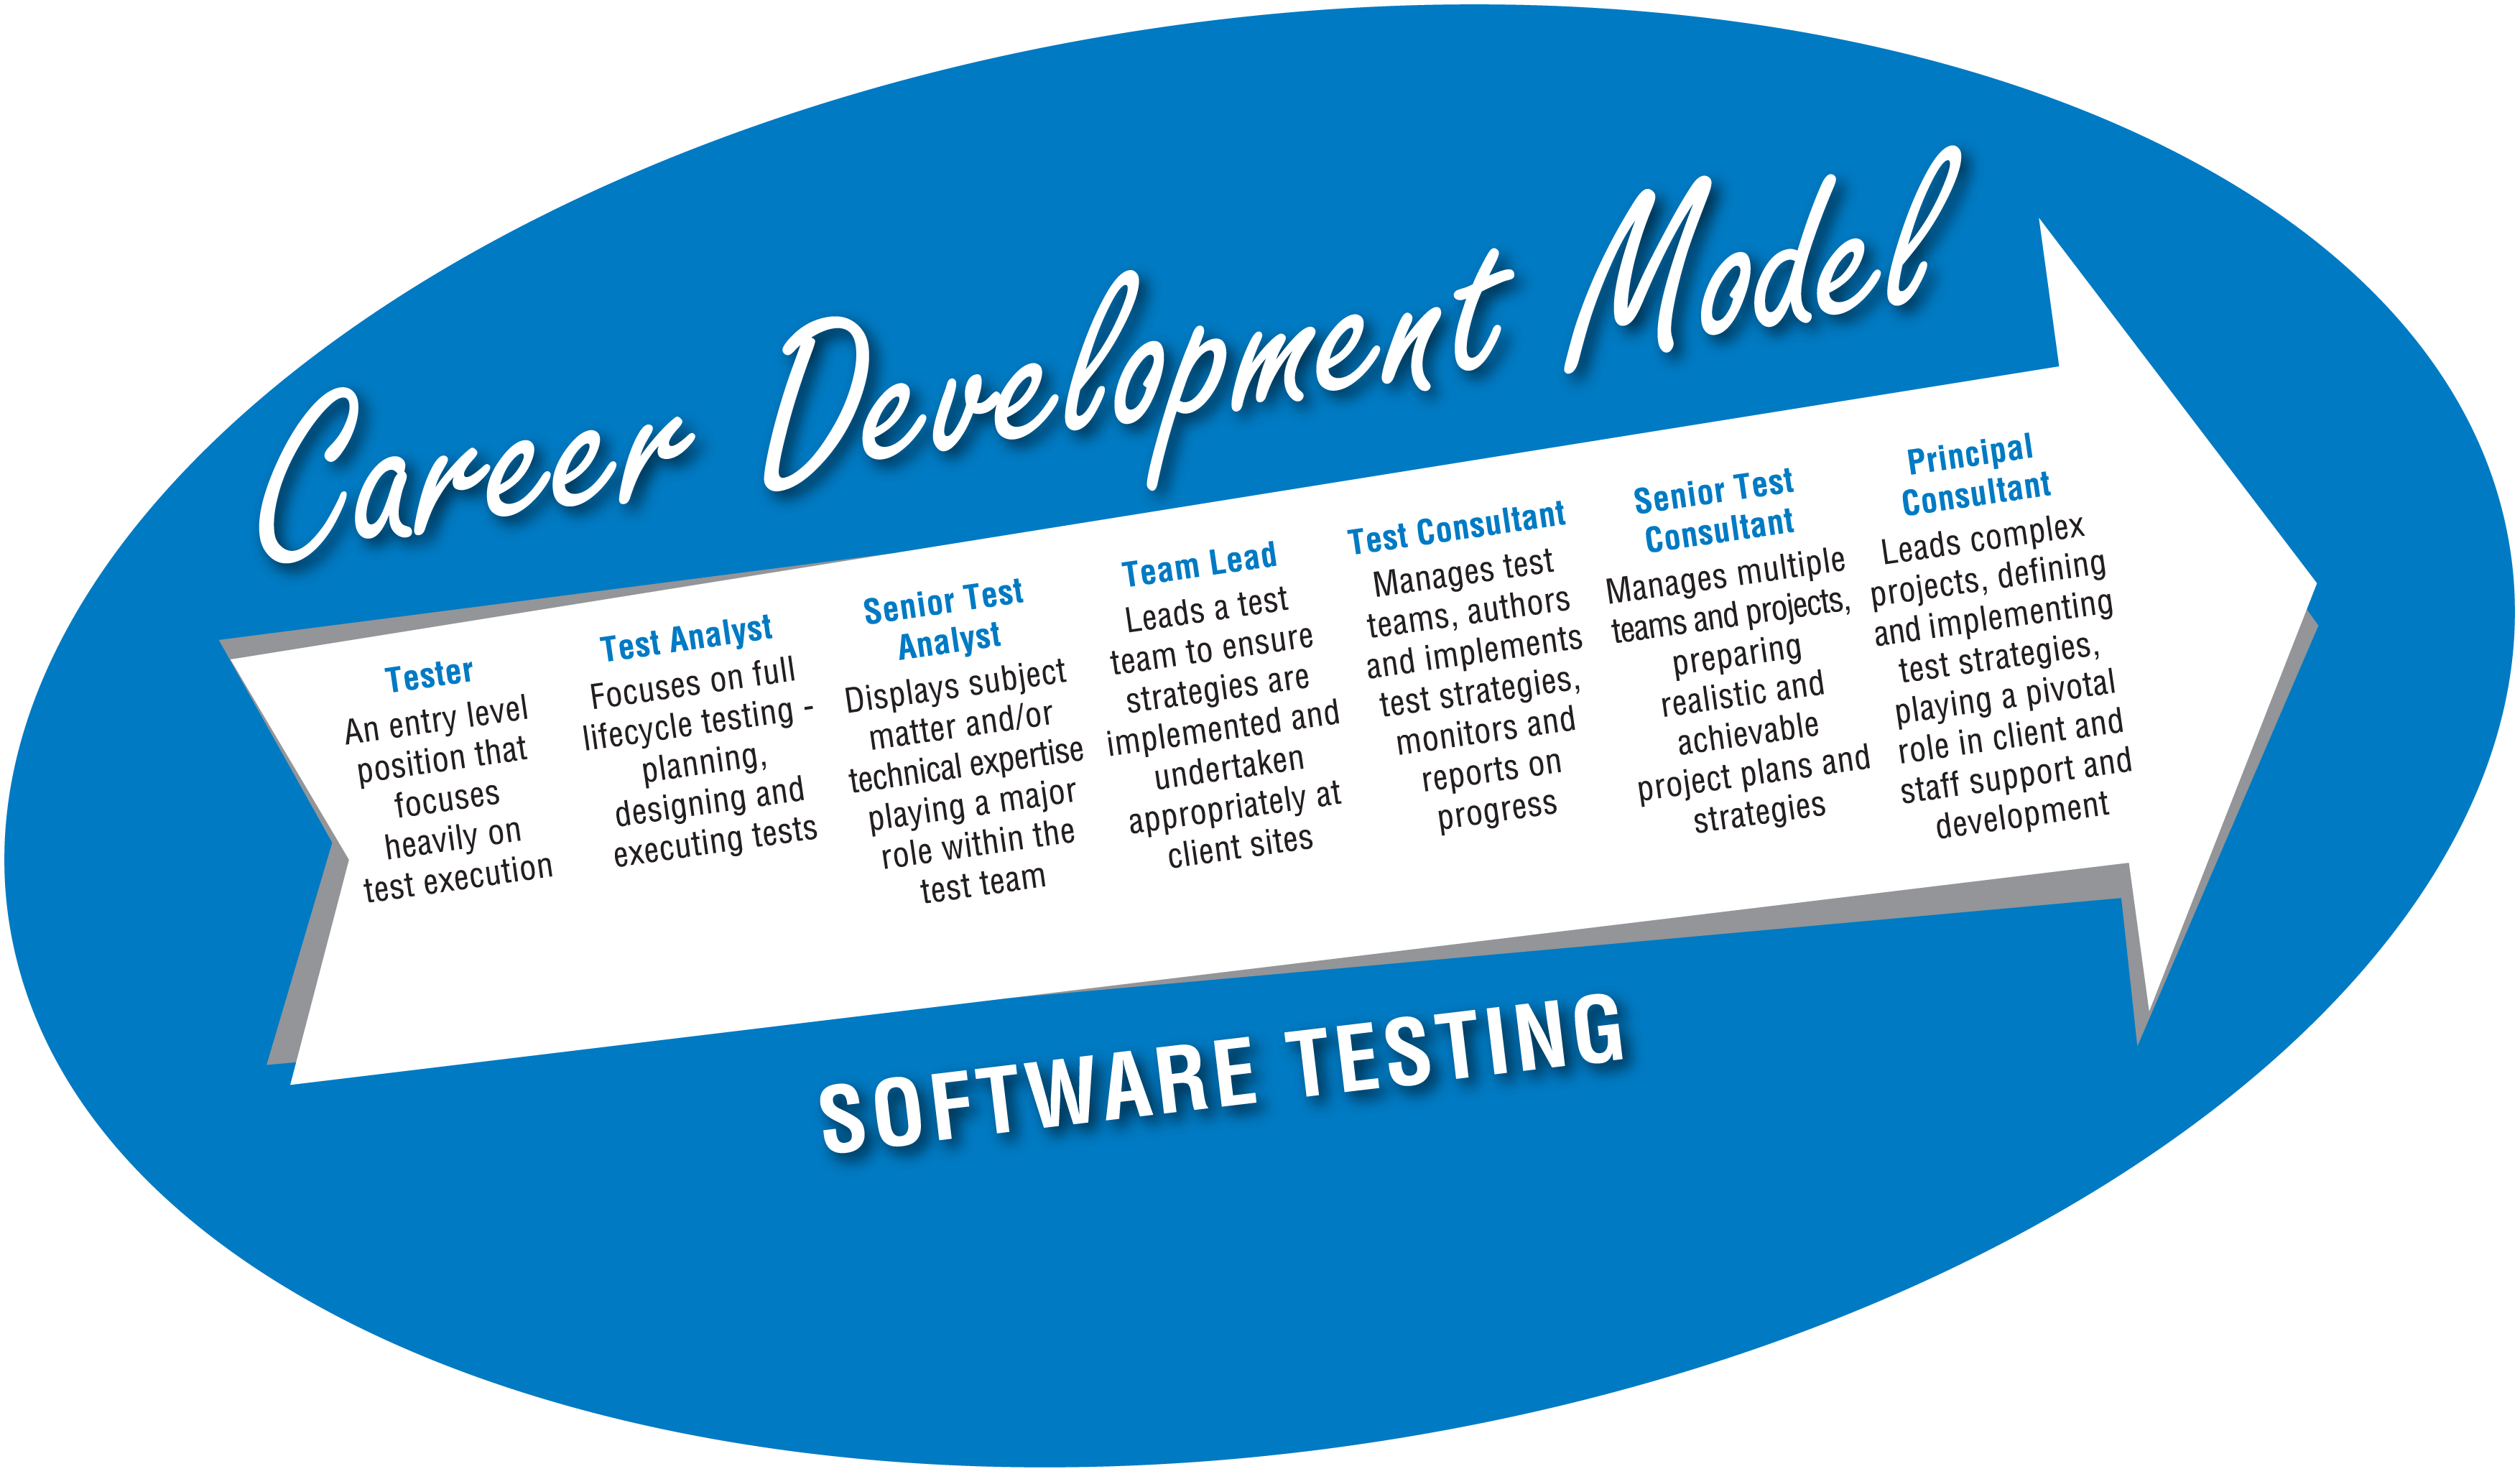 planit career development model career path for testers career career development